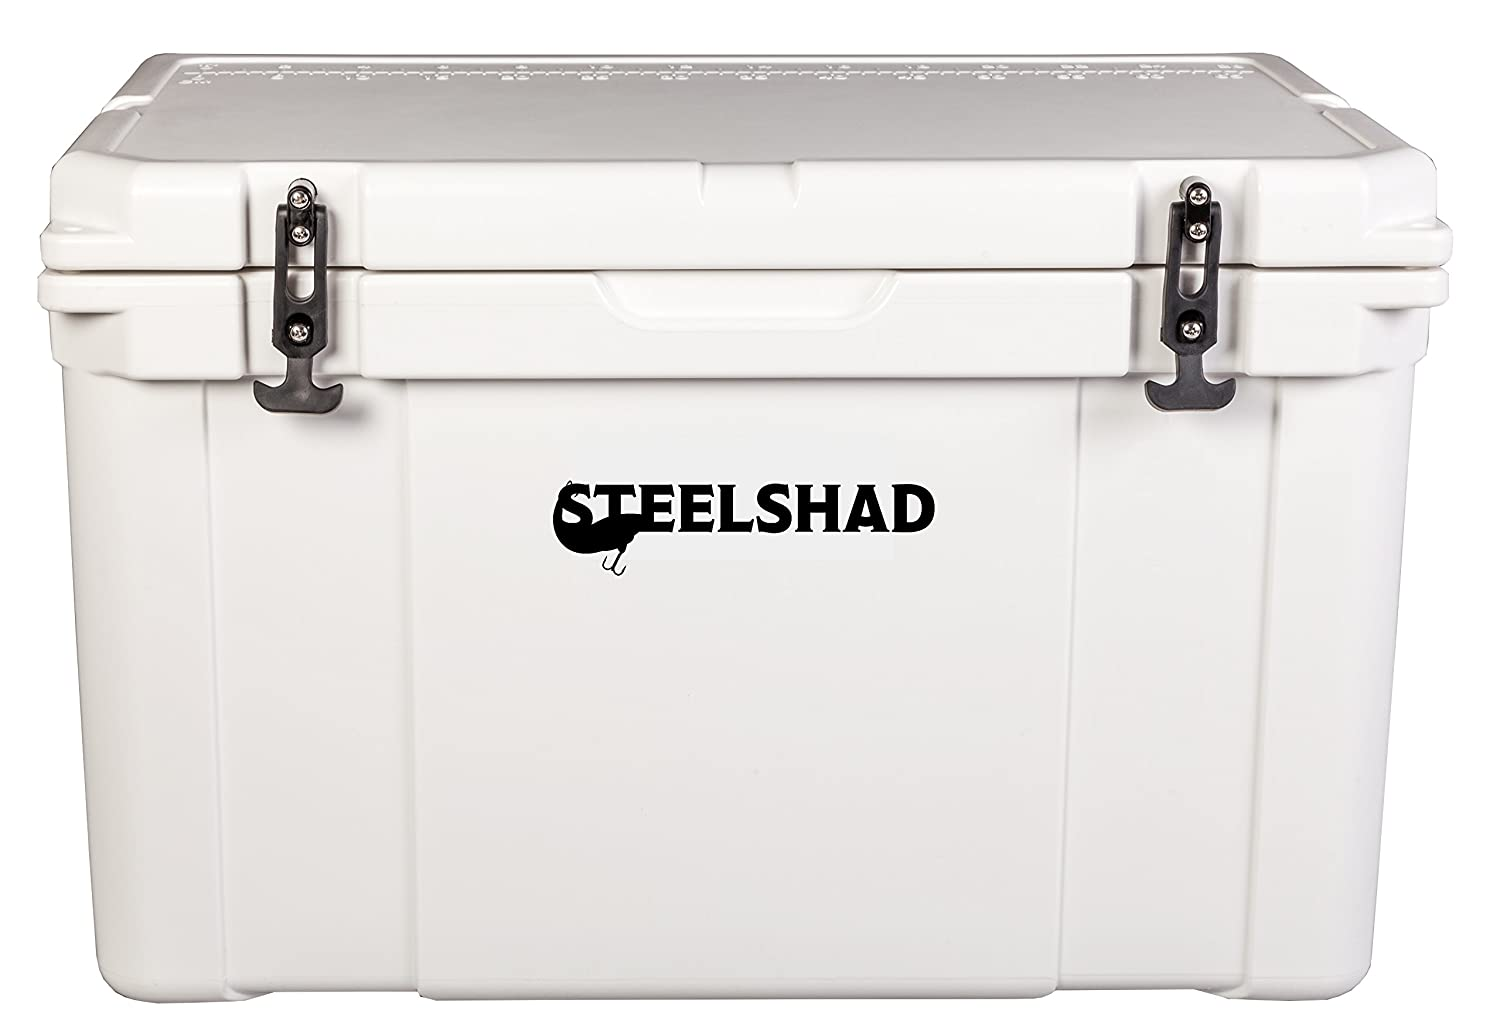 SteelShad Super Cooler – Hard Cooler Keeps Drinks Ice Cold. Perfect Cooler for Fishing, Hunting and Camping – 50L